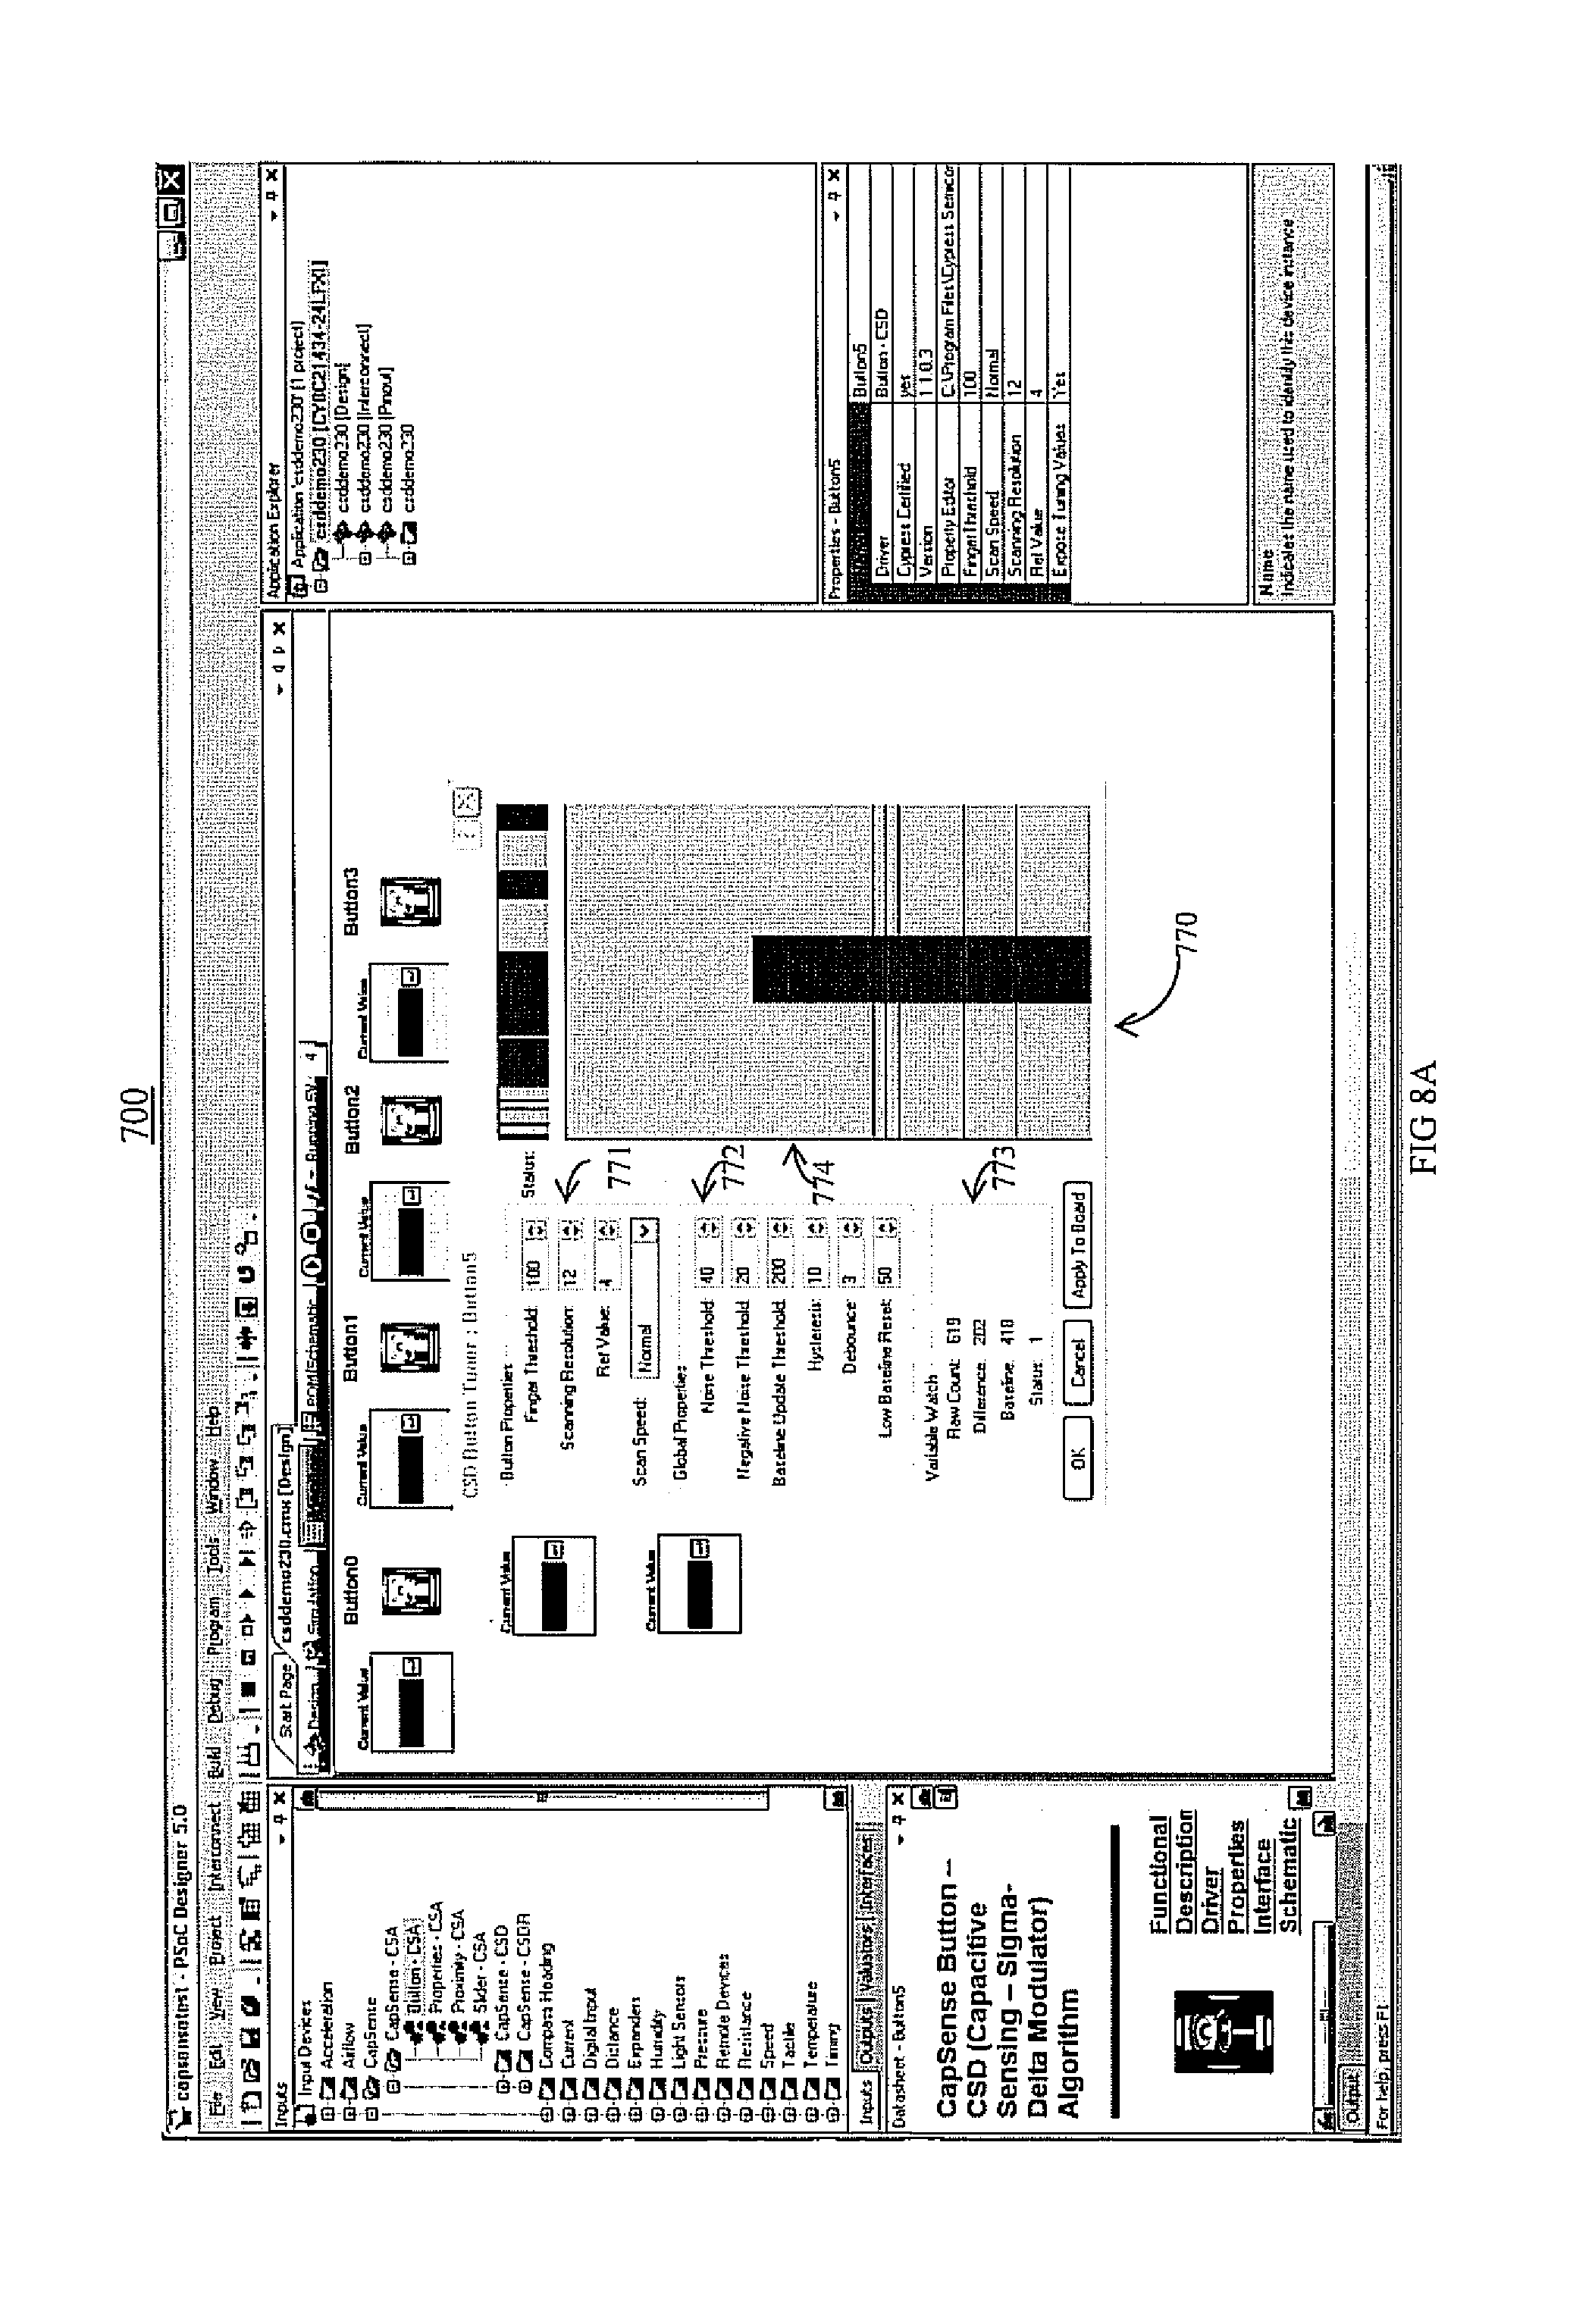 Patent Us 9720805 B1 Know If It Will Be Readable But Here Is A Wiring Diagram Of Fuse C 0 Petitions